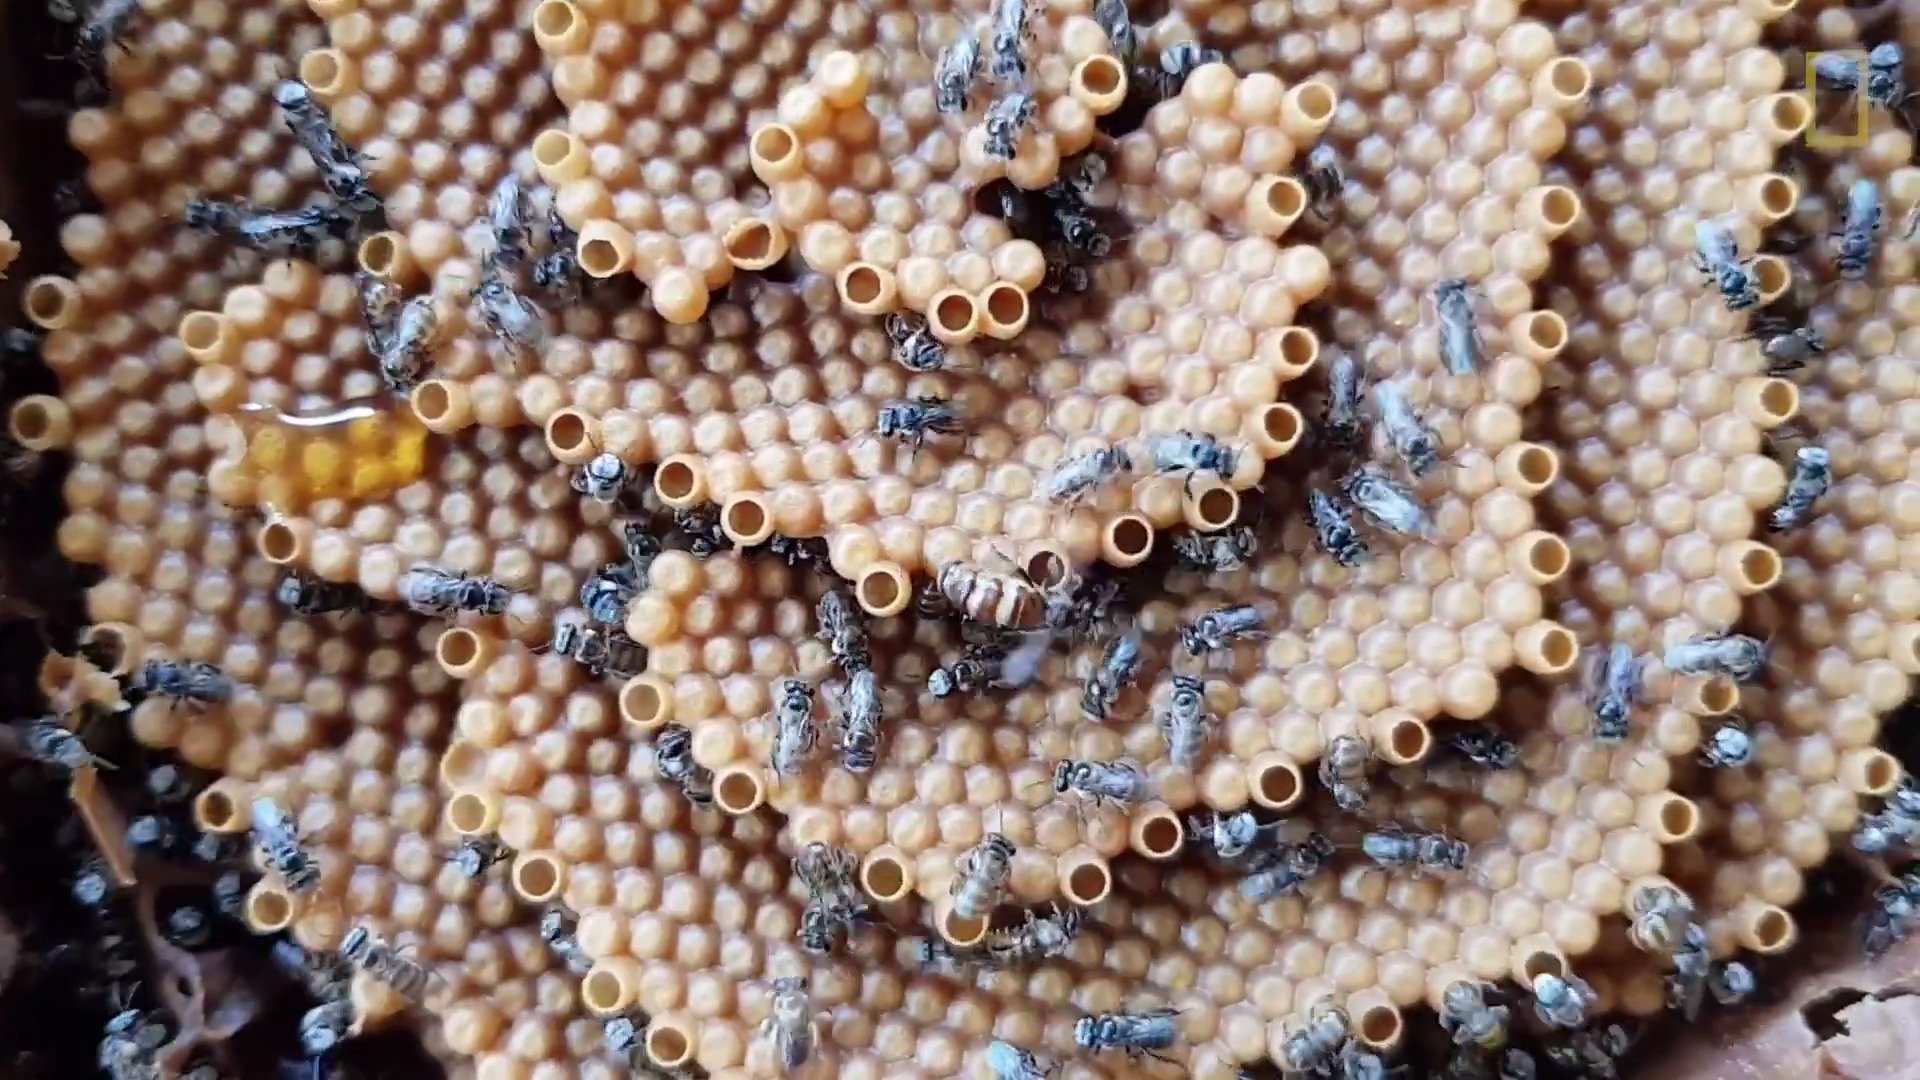 This is the only species of bees to build their hives upward, in a spiral https://t.co/dQsTOqT8kK